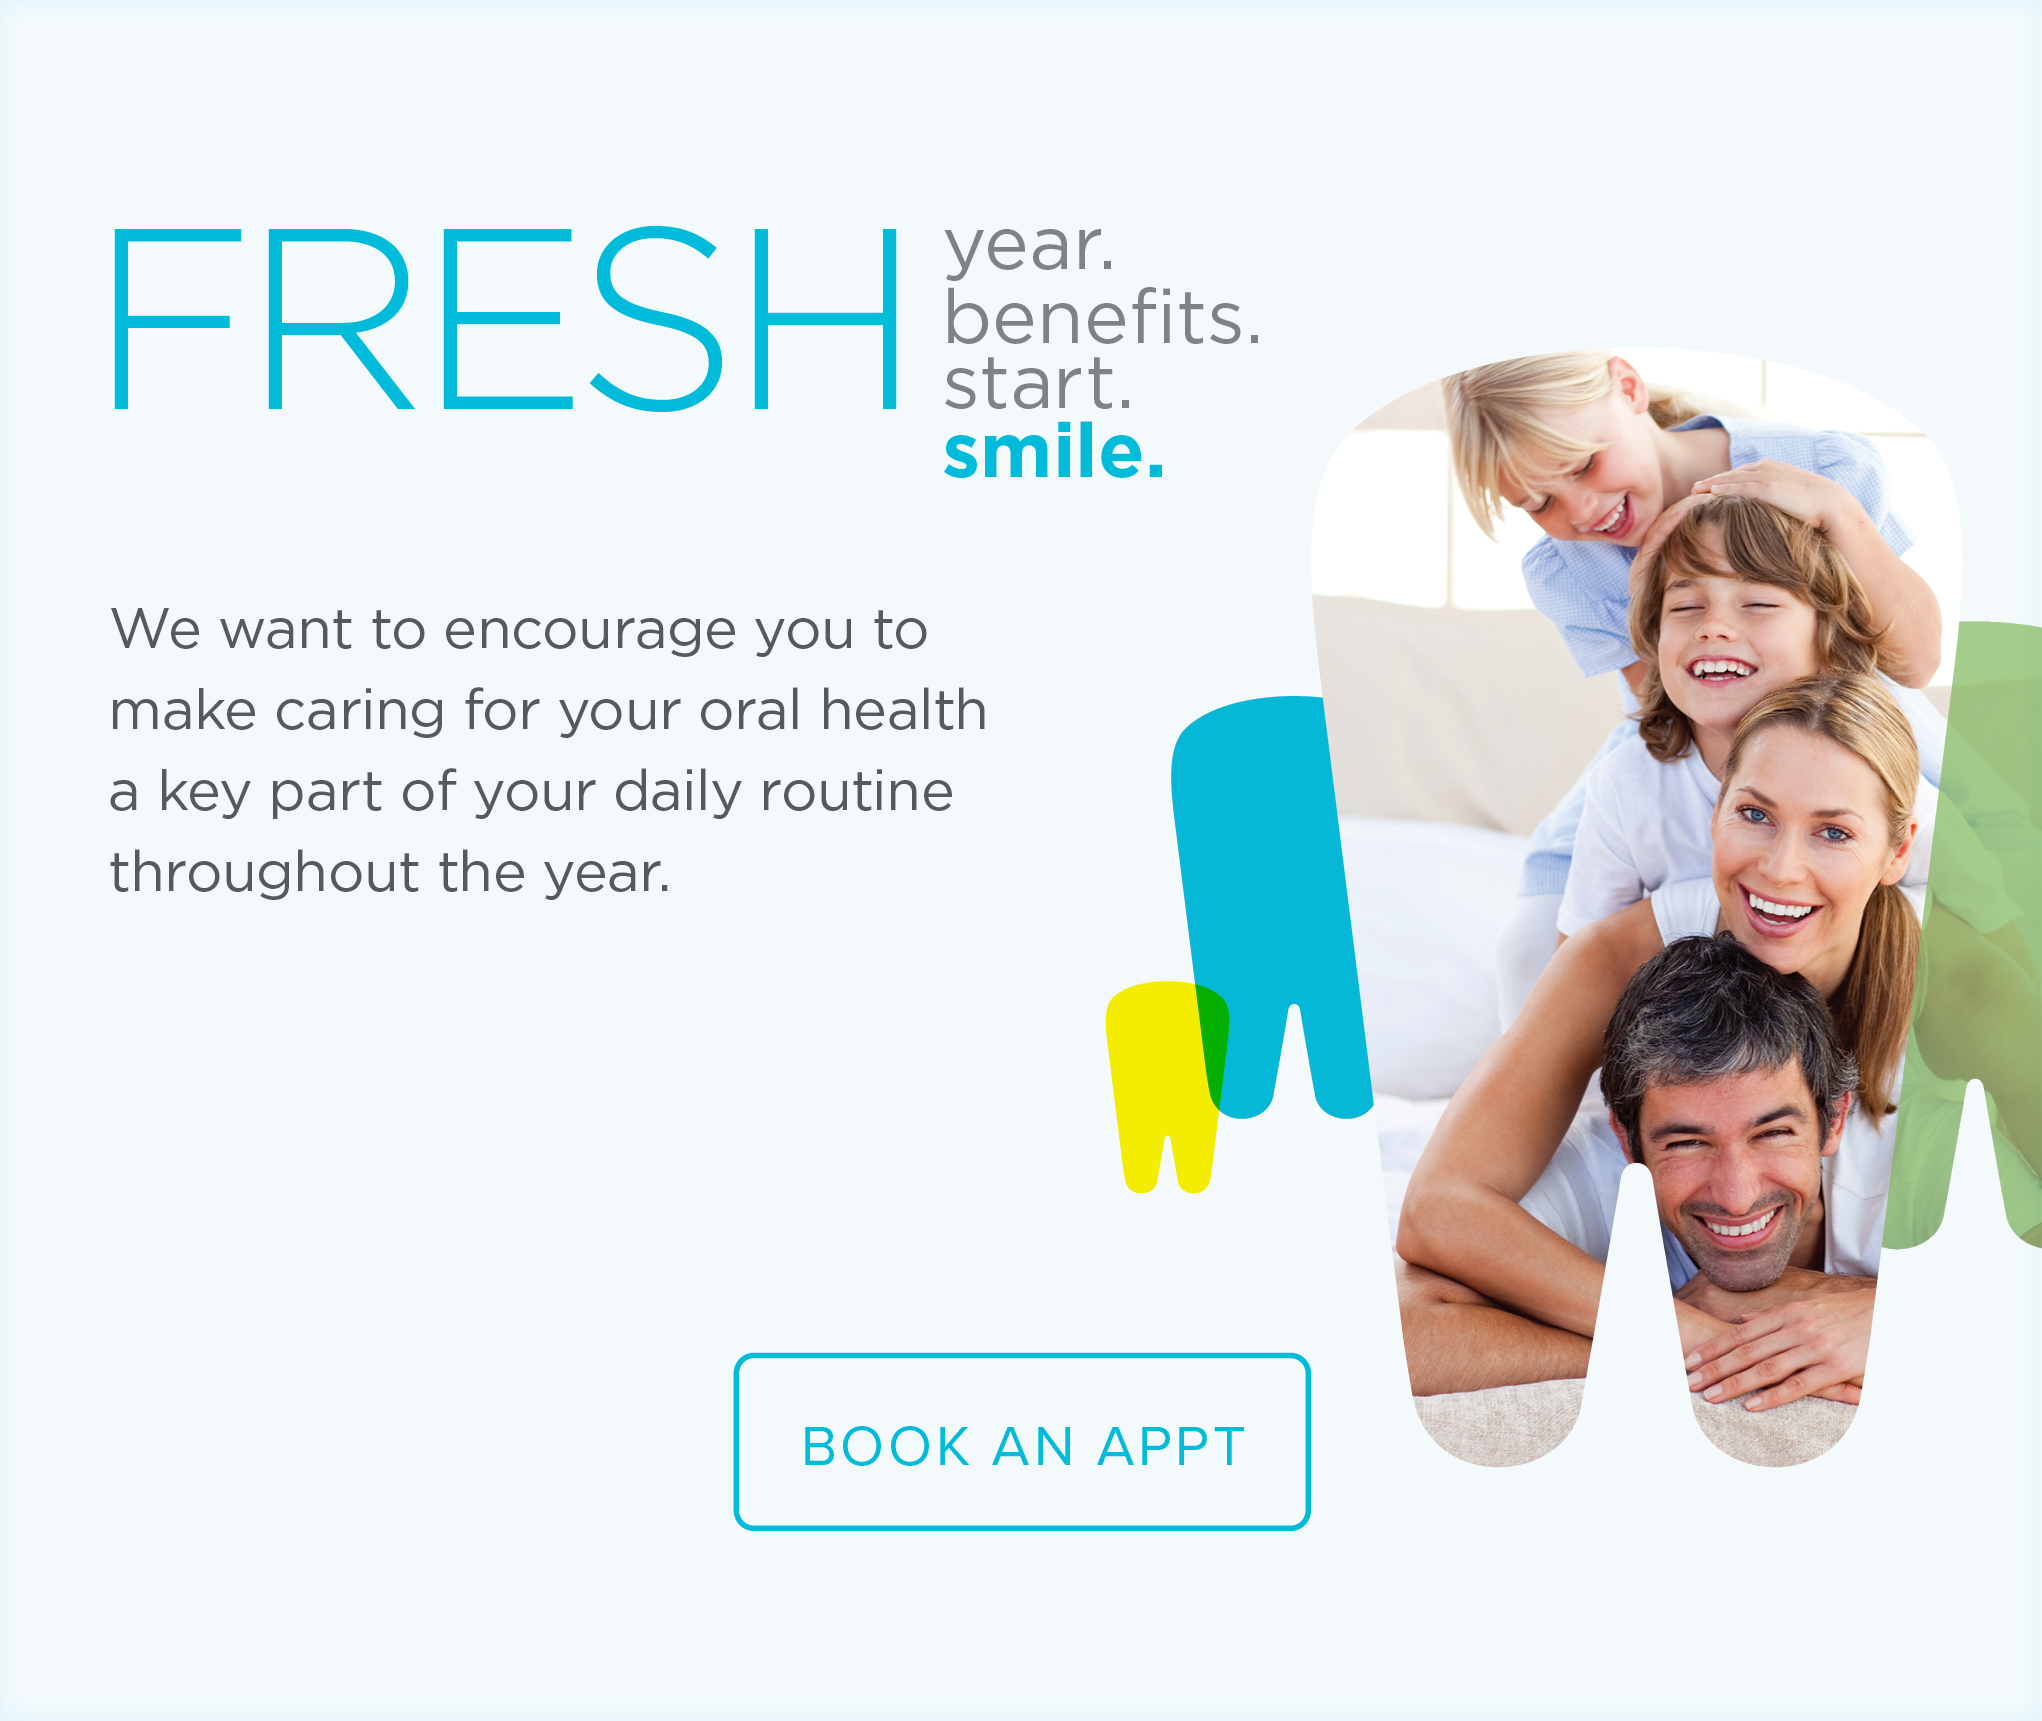 Paradise Smiles Dentistry - Make the Most of Your Benefits